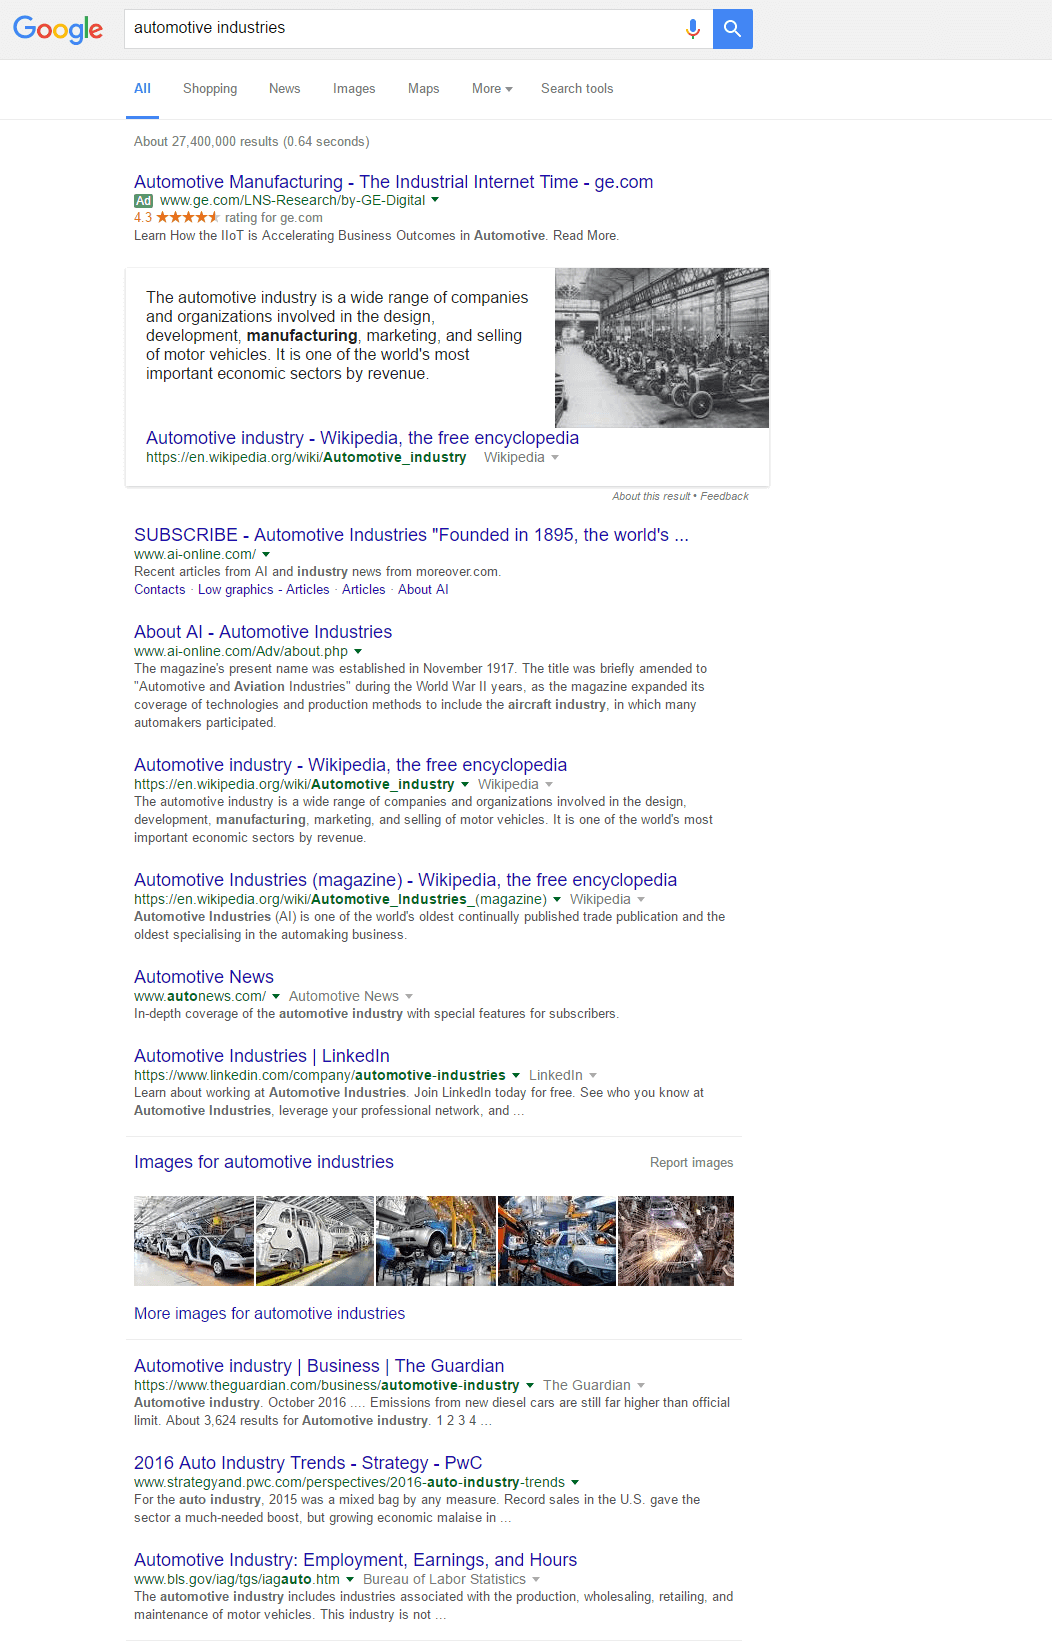 automotive industries SERP